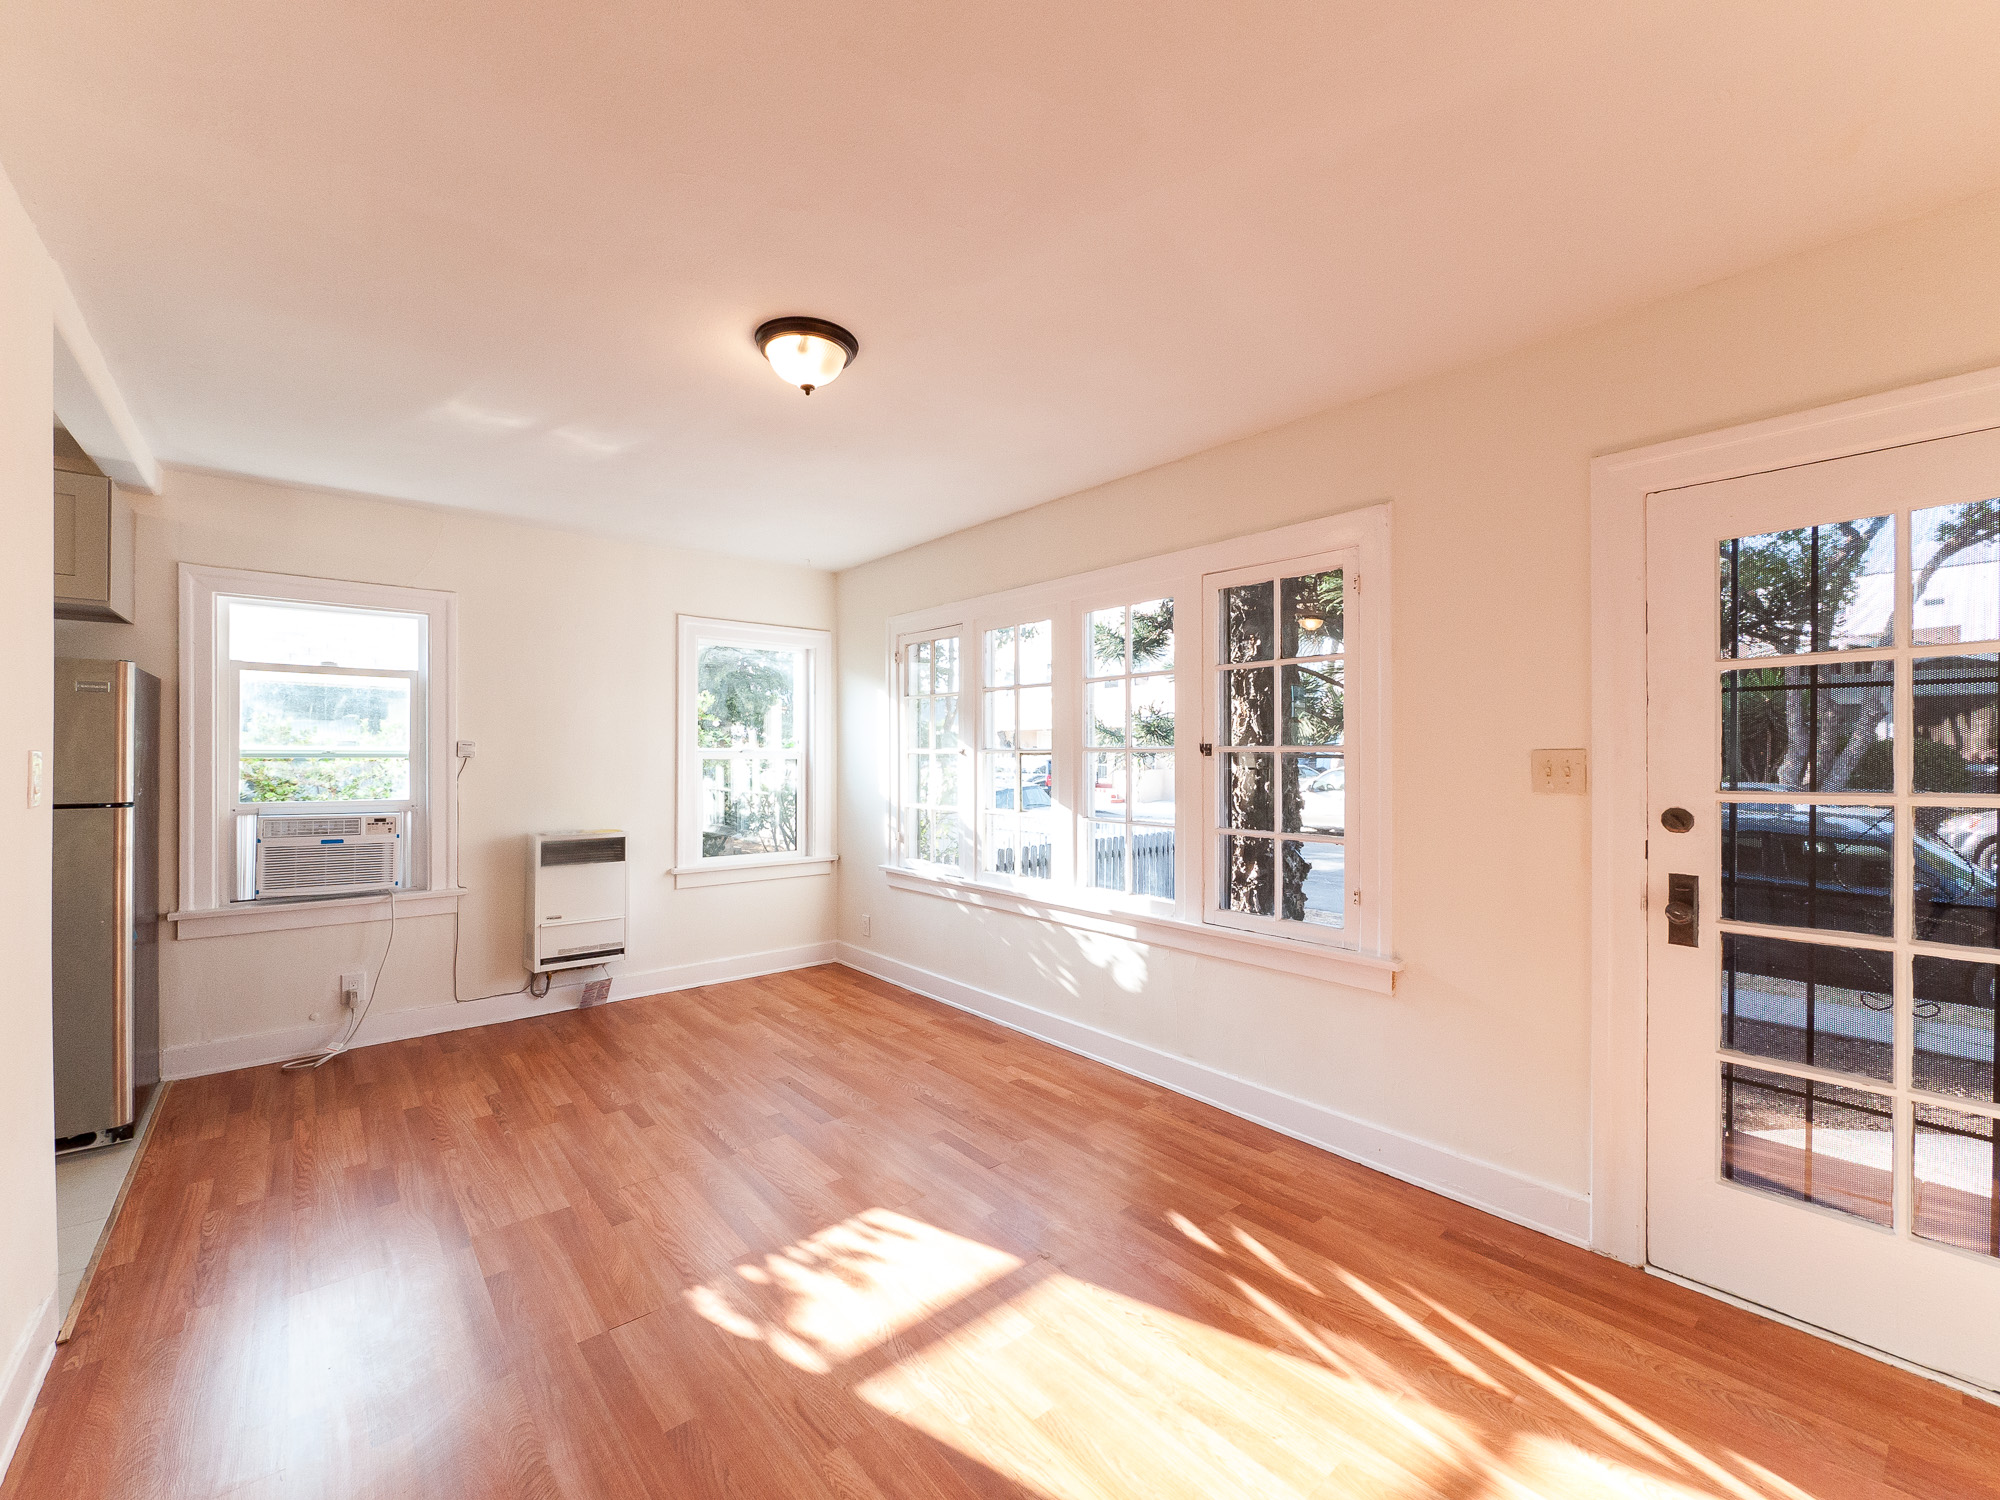 ADORABLE 1-BED in 4-PLEX- FULLY LOADED KITCHEN, WASHER/ DRYER, & PARKING!